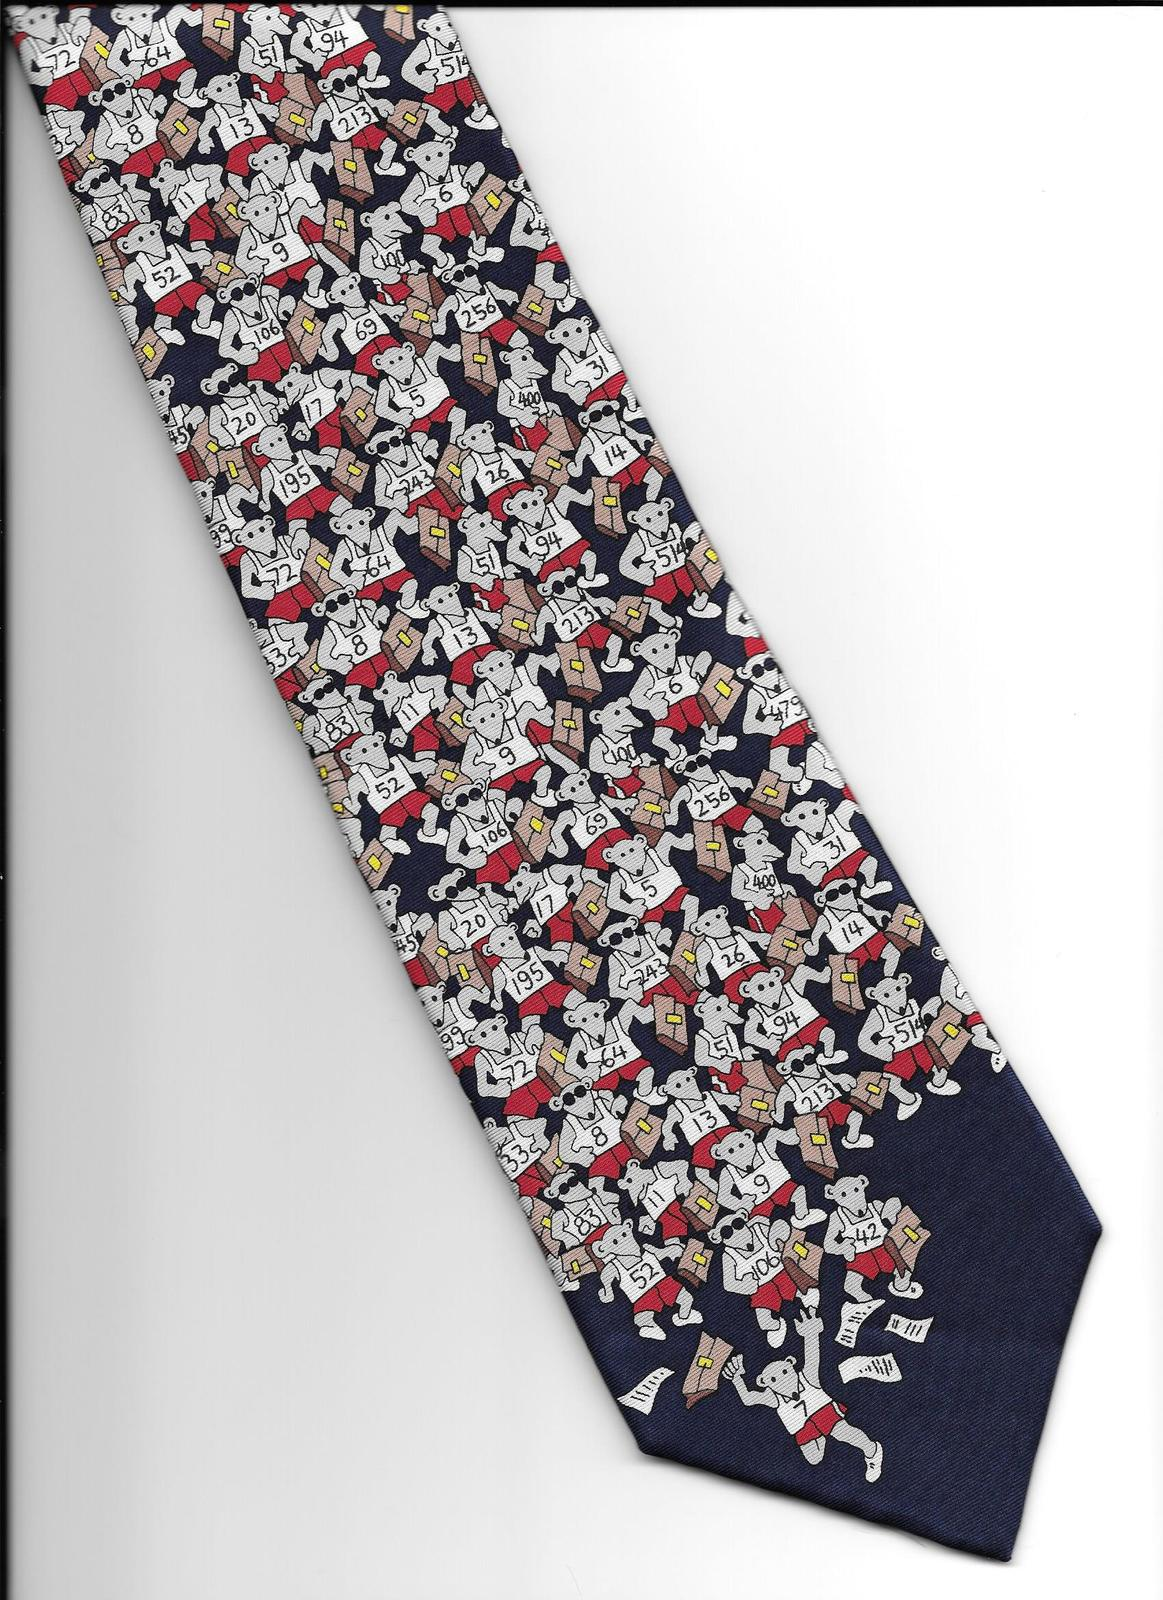 Alynn Neckwear Rat Race Neck Tie blue silk novelty retro office necktie N3